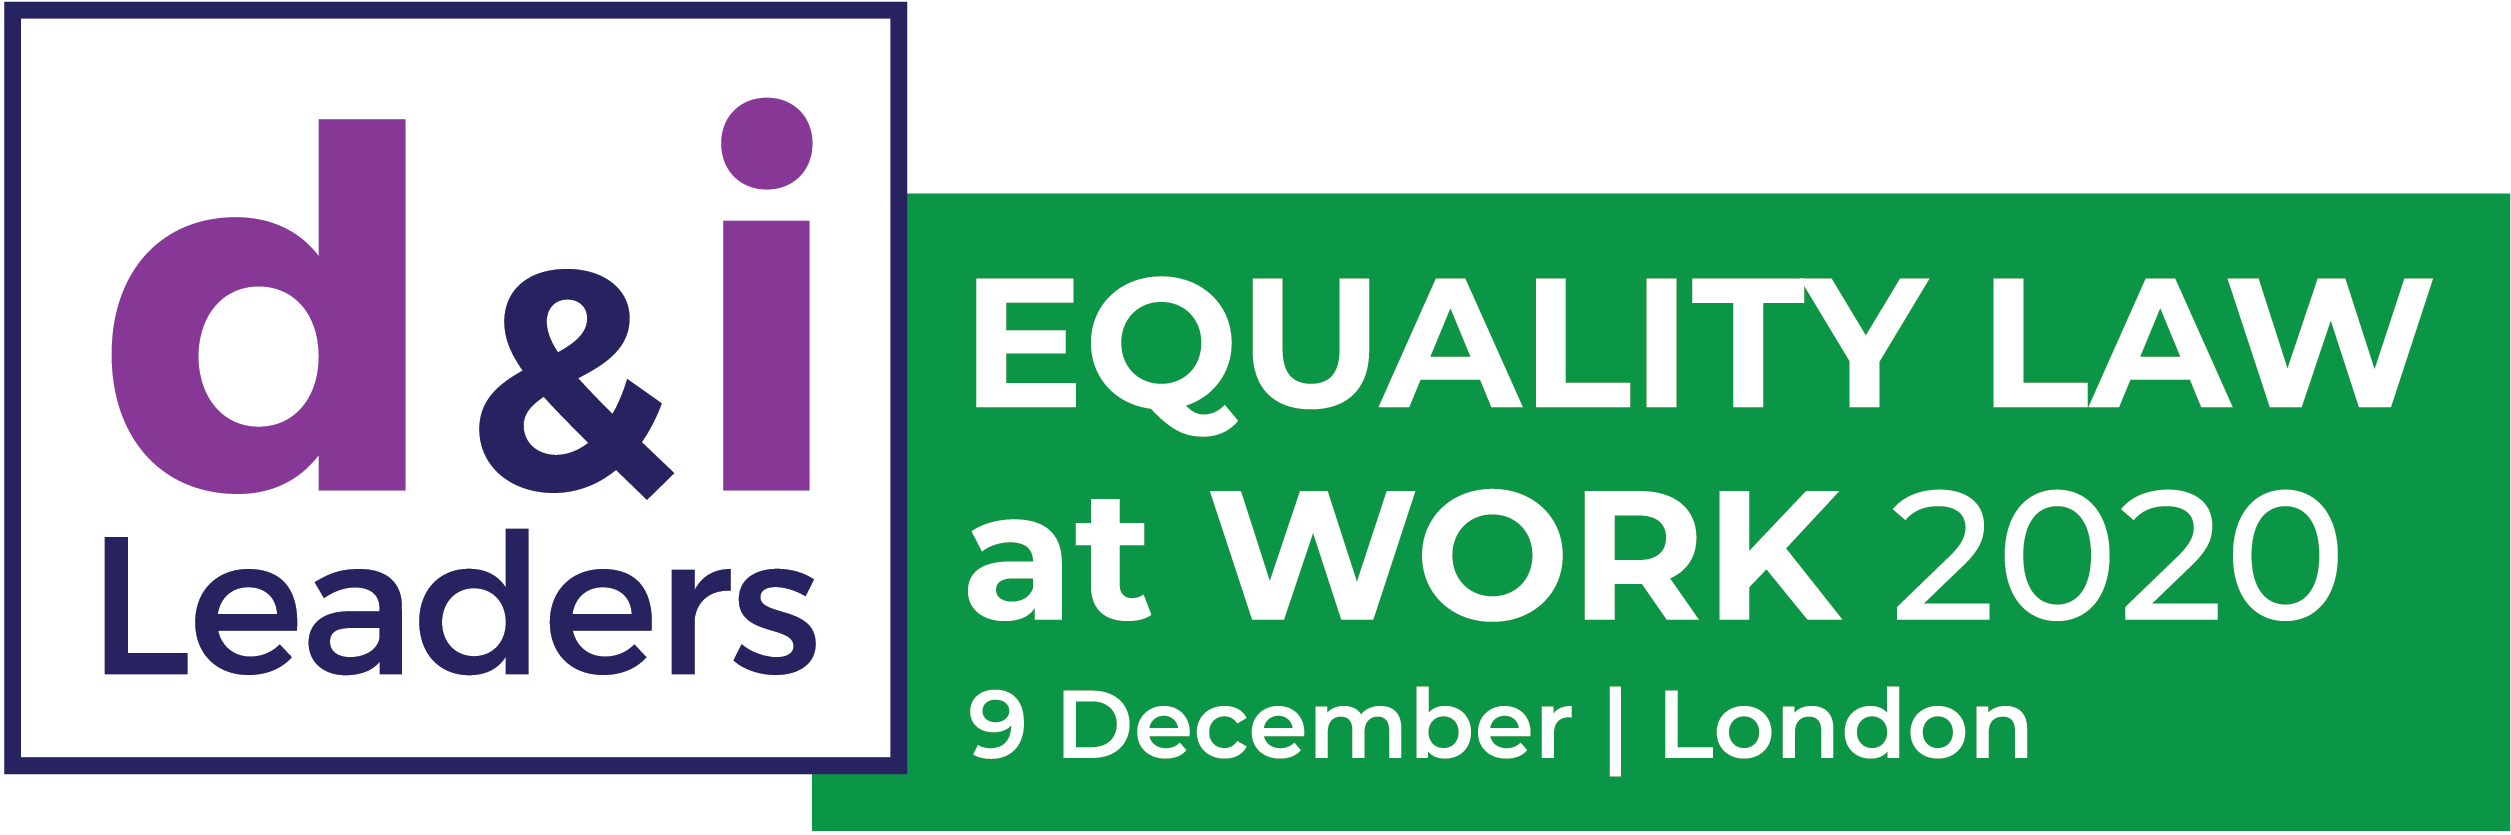 Diversity and Inclusion Leaders Equality Law at Work Conference 2020